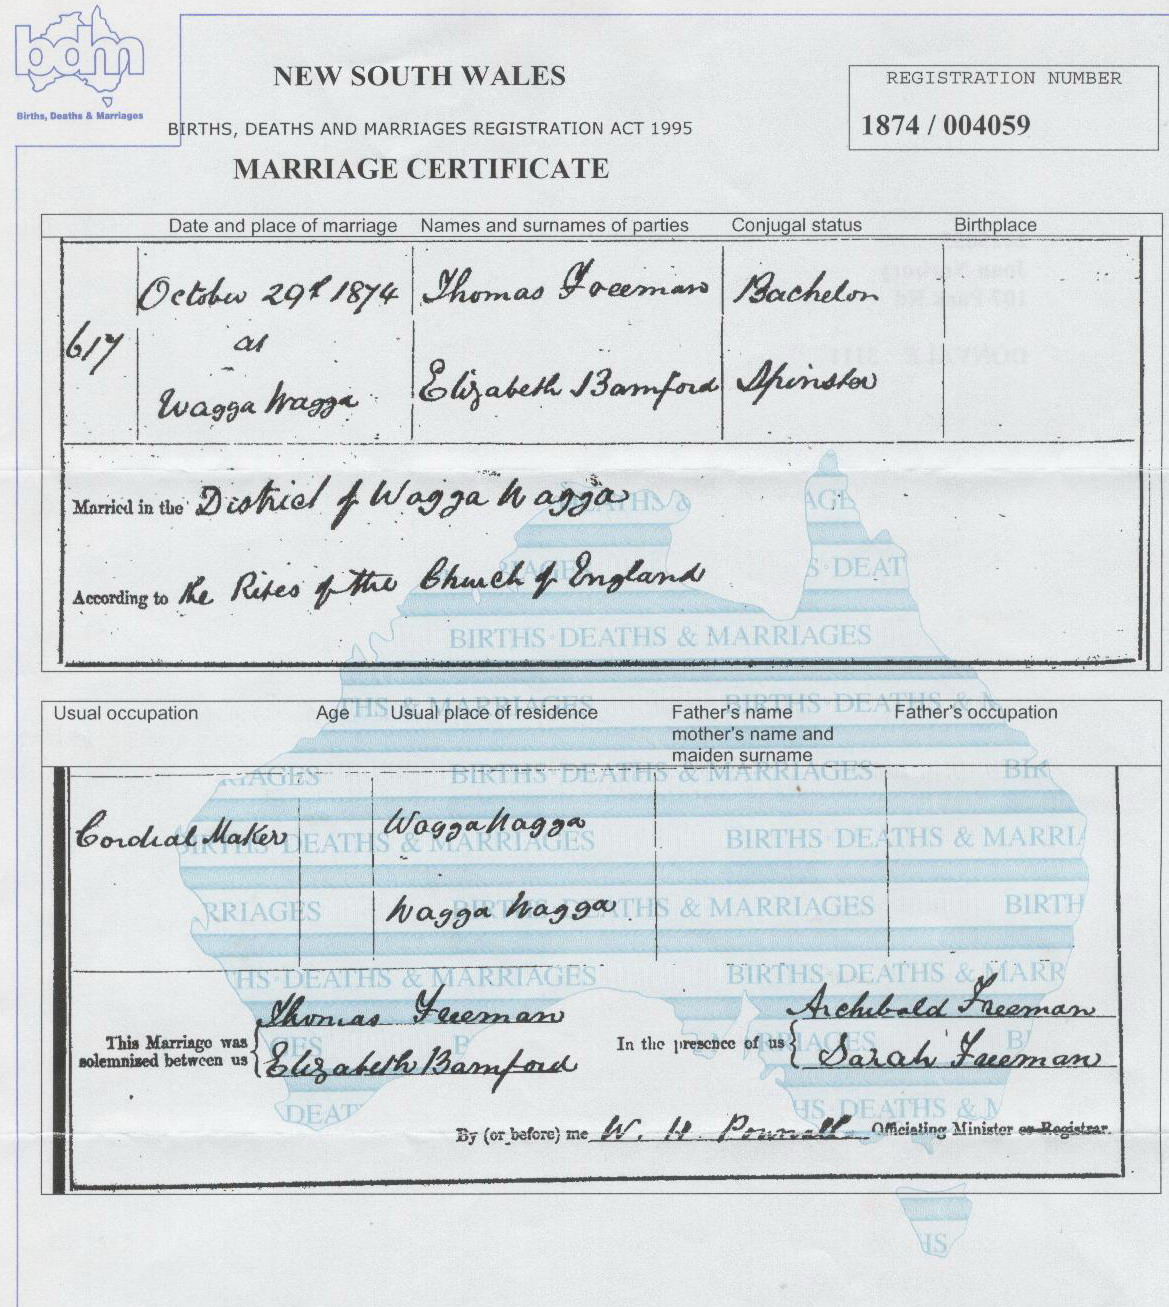 Thomas Freeman and Elizabeth Bamford marriage certificate